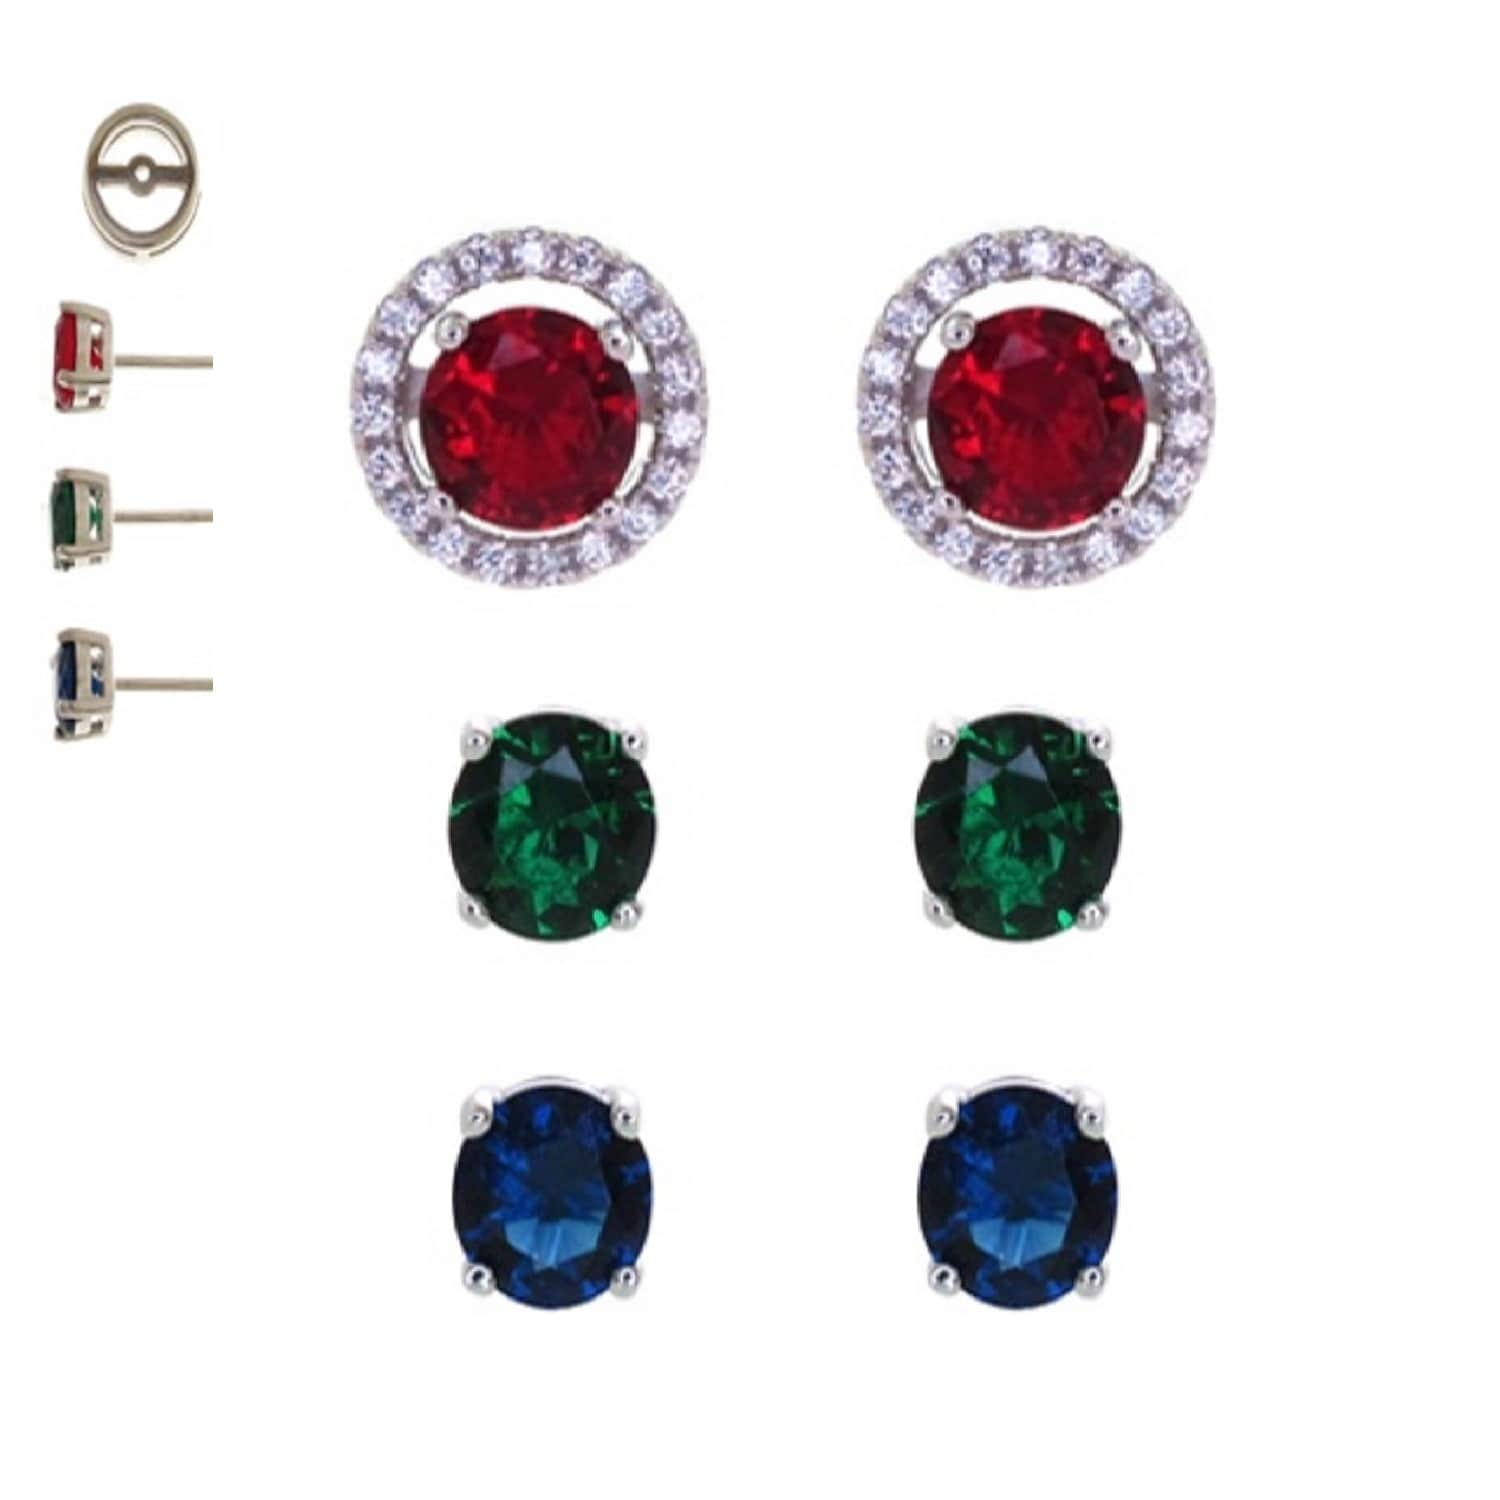 j sapphire earrings master sale more in at interchangeable and jewelry diamond stones gold with id for